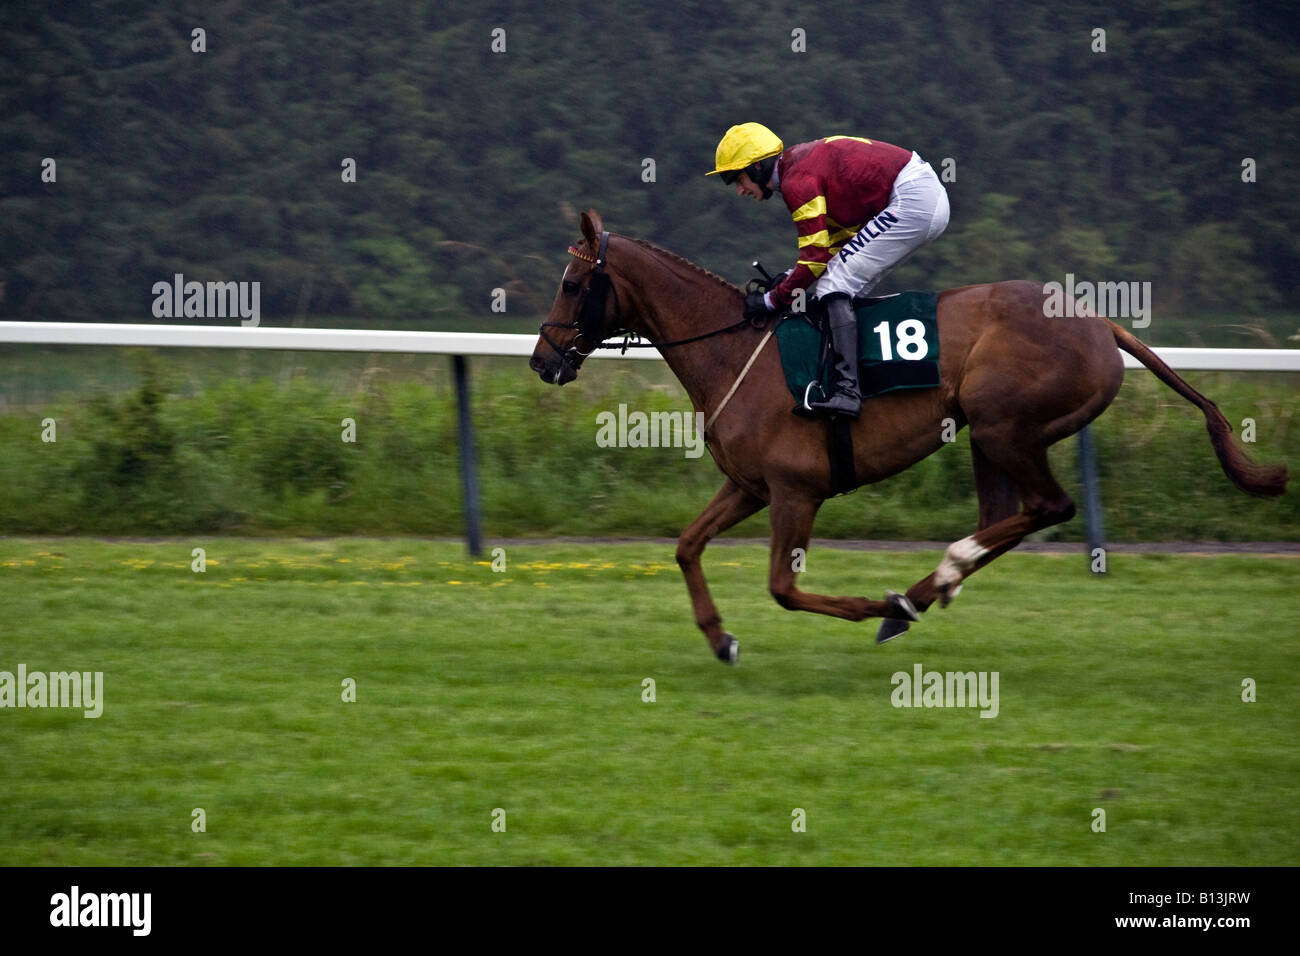 Horse and jockey warming up before The Gold Cup Steeplechase at Scone Palace Park Racecourse Perth,UK Stock Photo